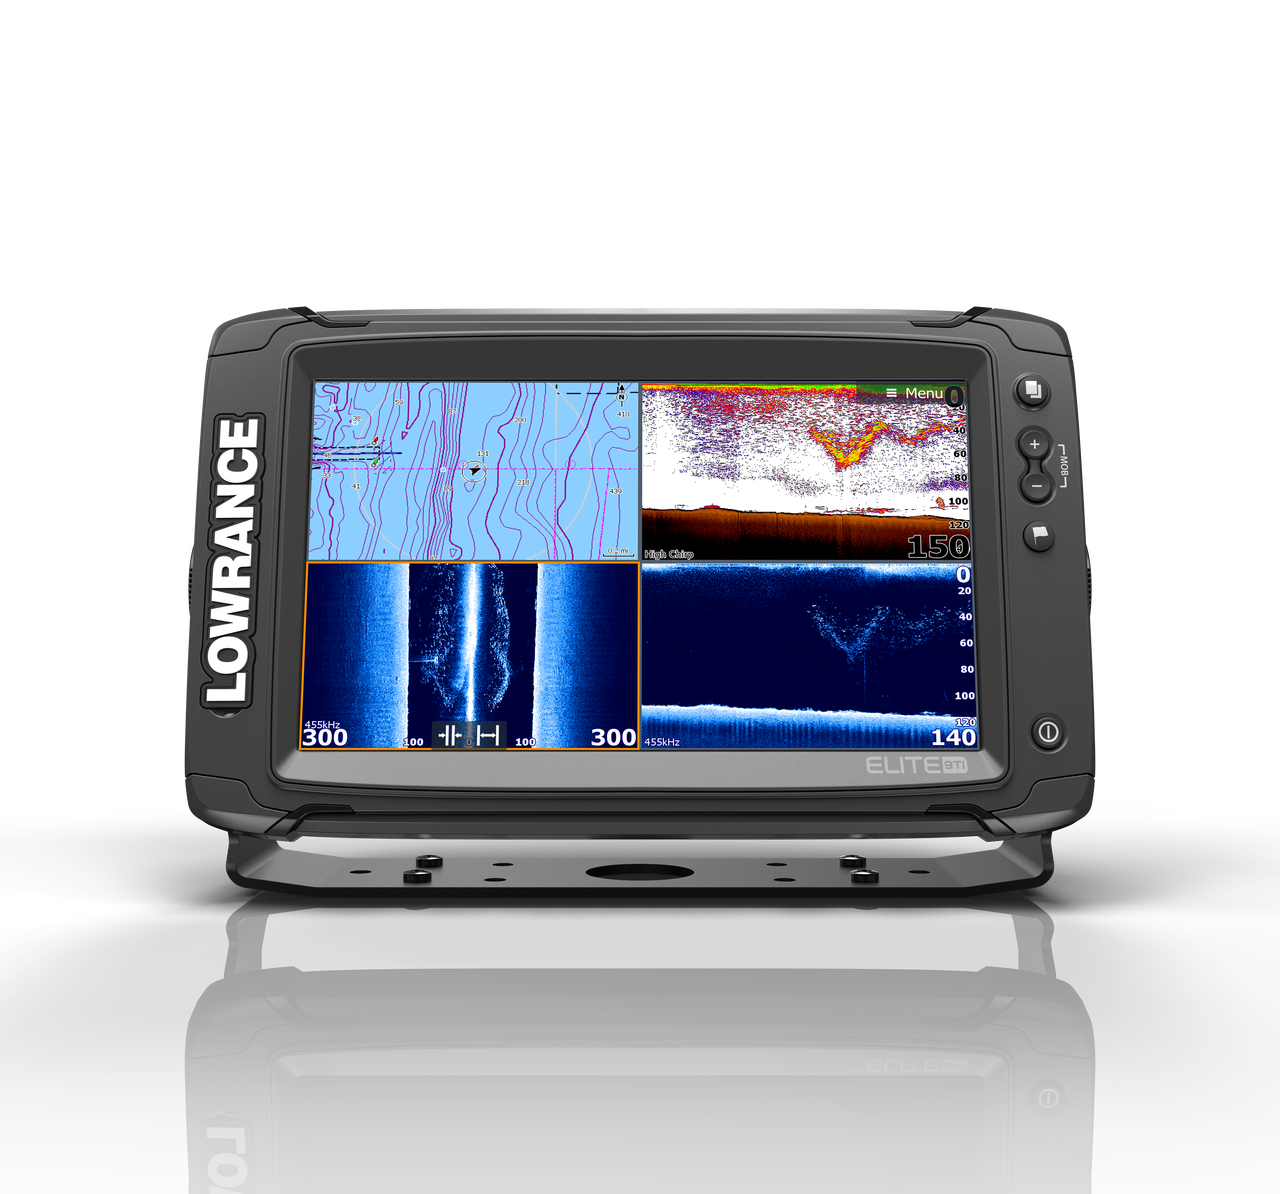 Lowrance Elite 9 Ti Multifunction Display Home View